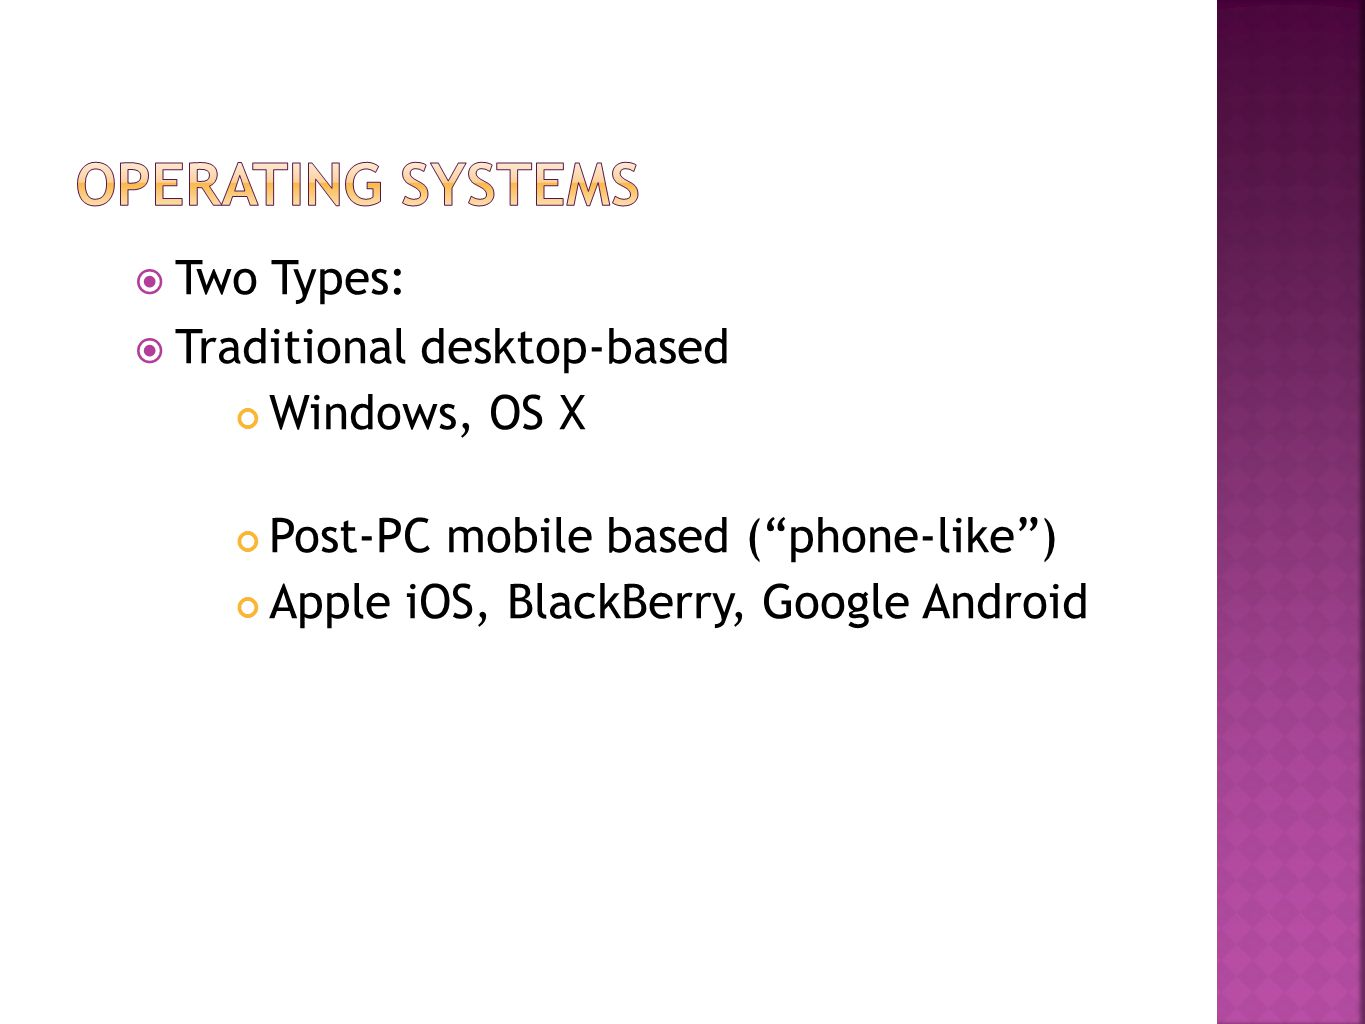  Two Types:  Traditional desktop-based Windows, OS X Post-PC mobile based ( phone-like ) Apple iOS, BlackBerry, Google Android